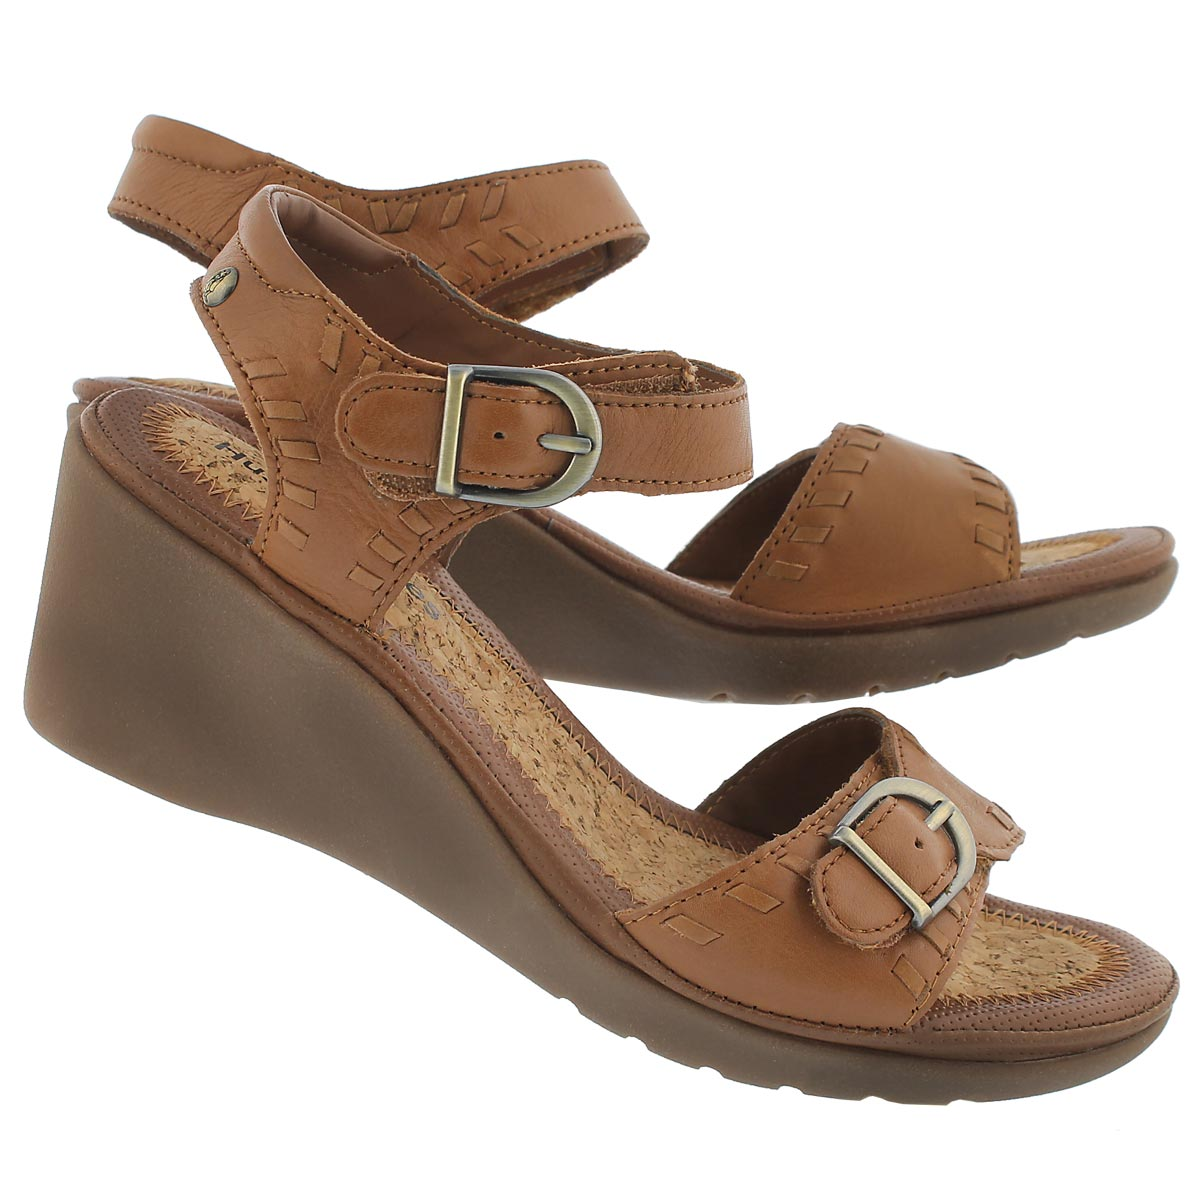 Lds Noelle Russo tan wedge sandal